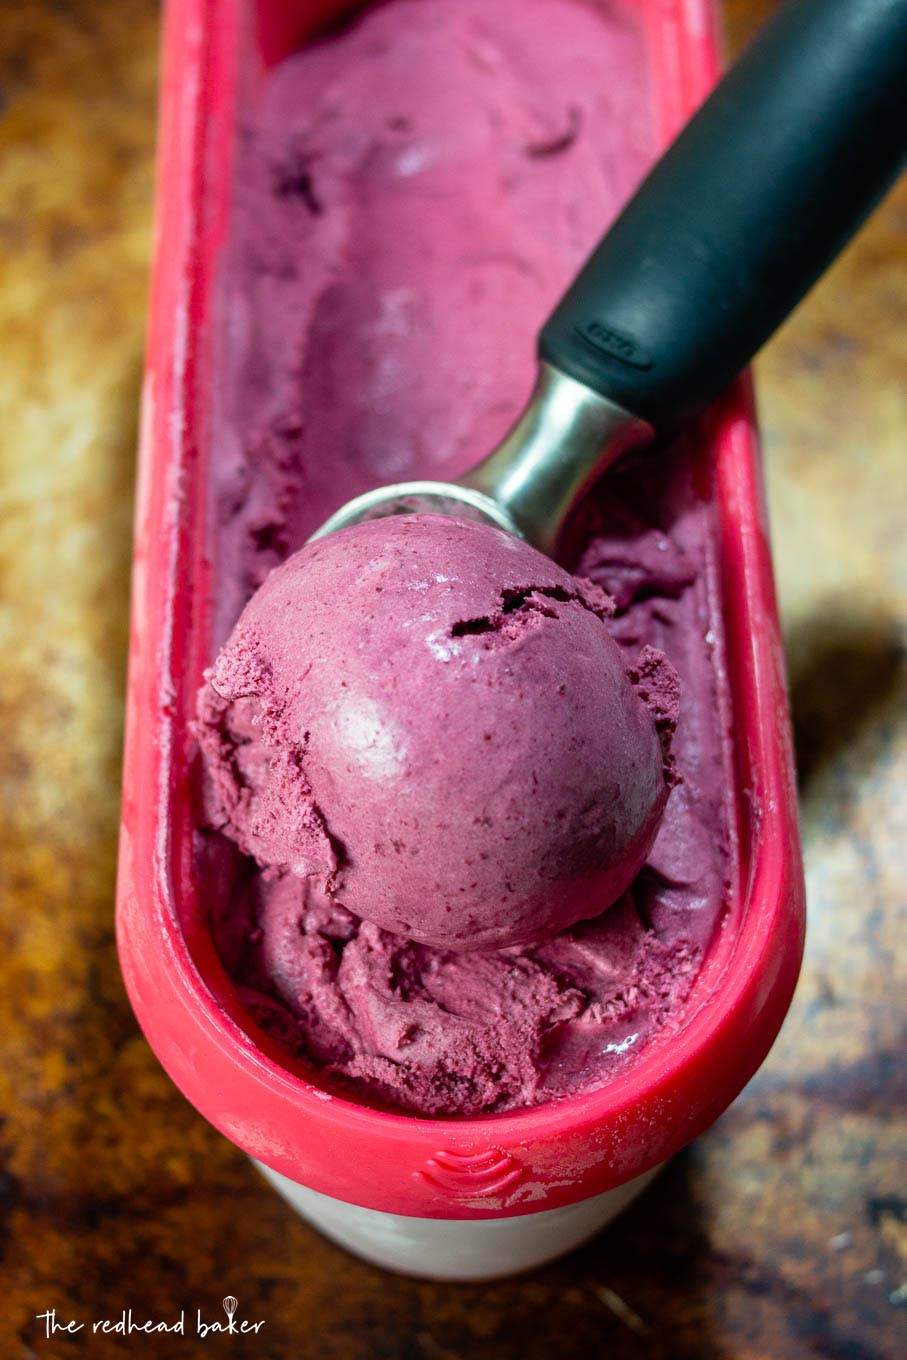 An ice cream scooper in a container of bourbon roasted cherry ice cream